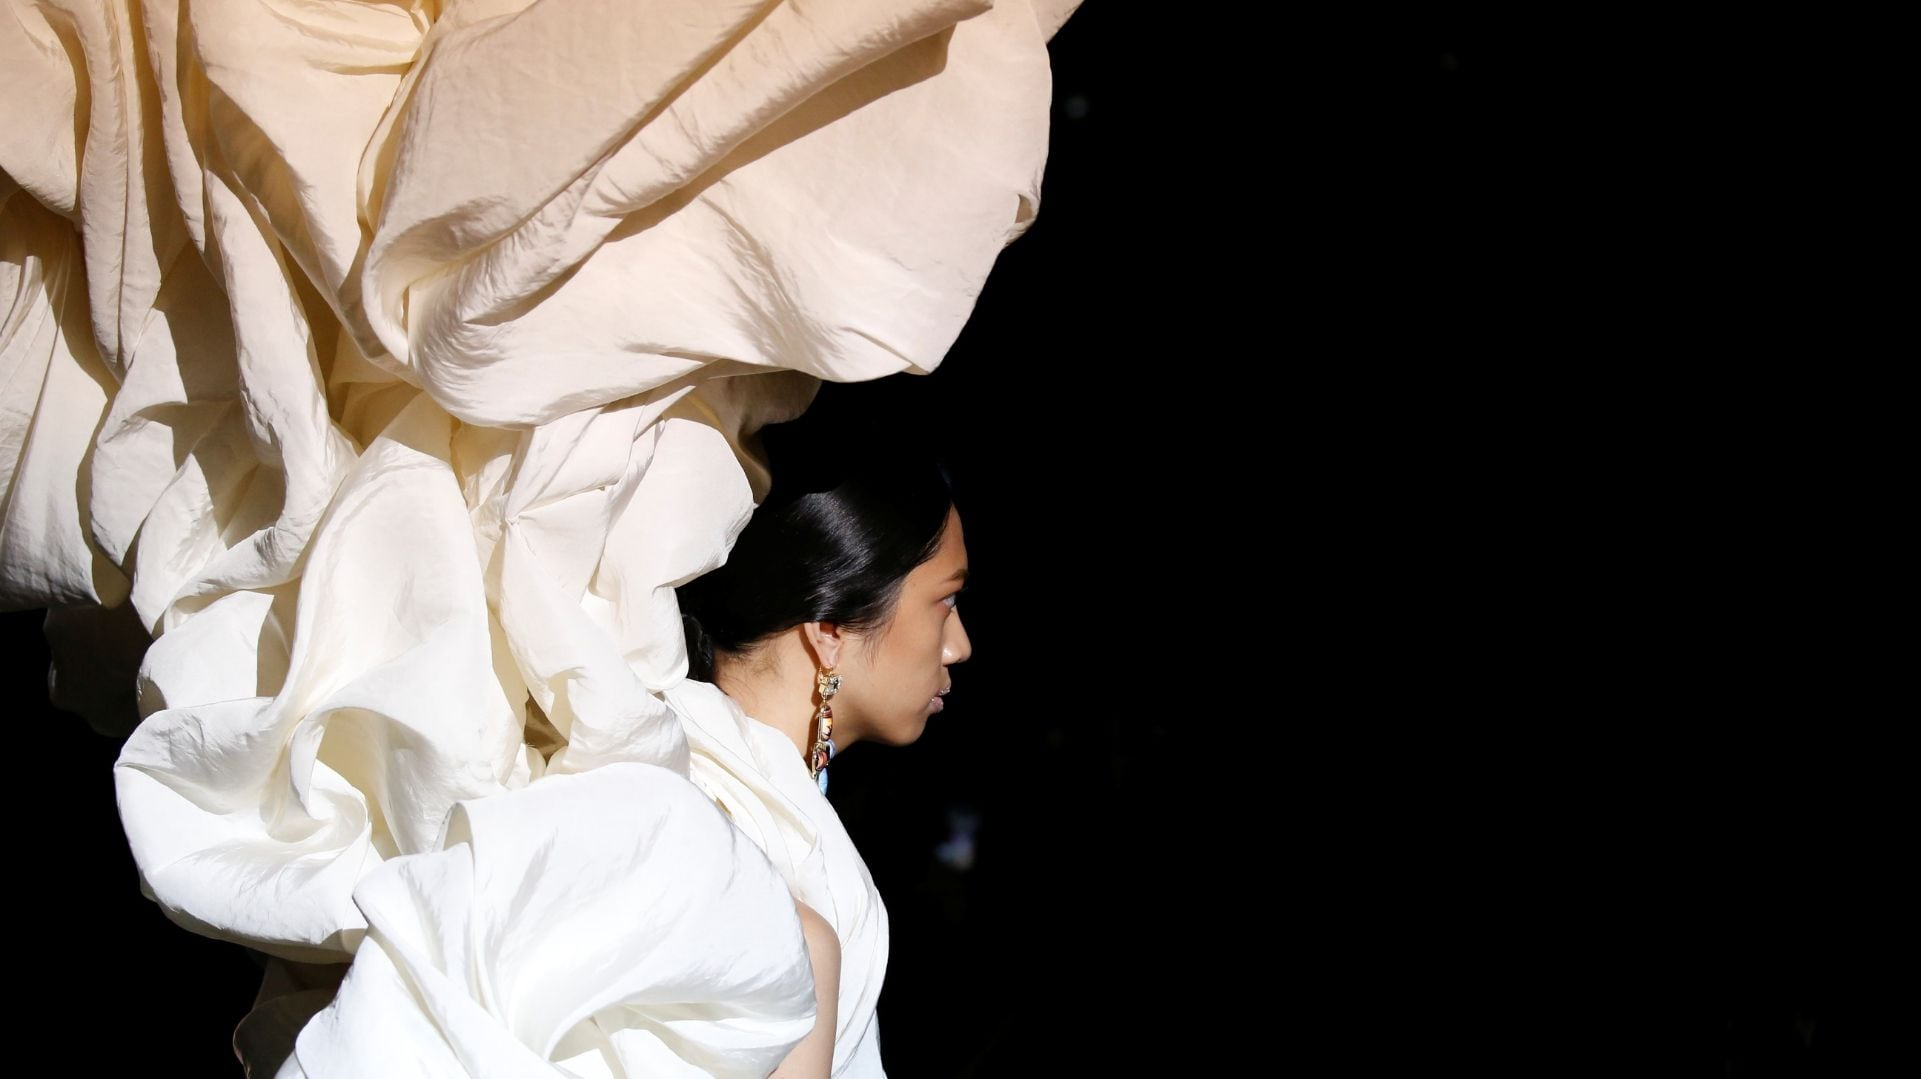 Paris Haute Couture Fashion Week 2019 stuns with extraordinary fashion craftsmanship